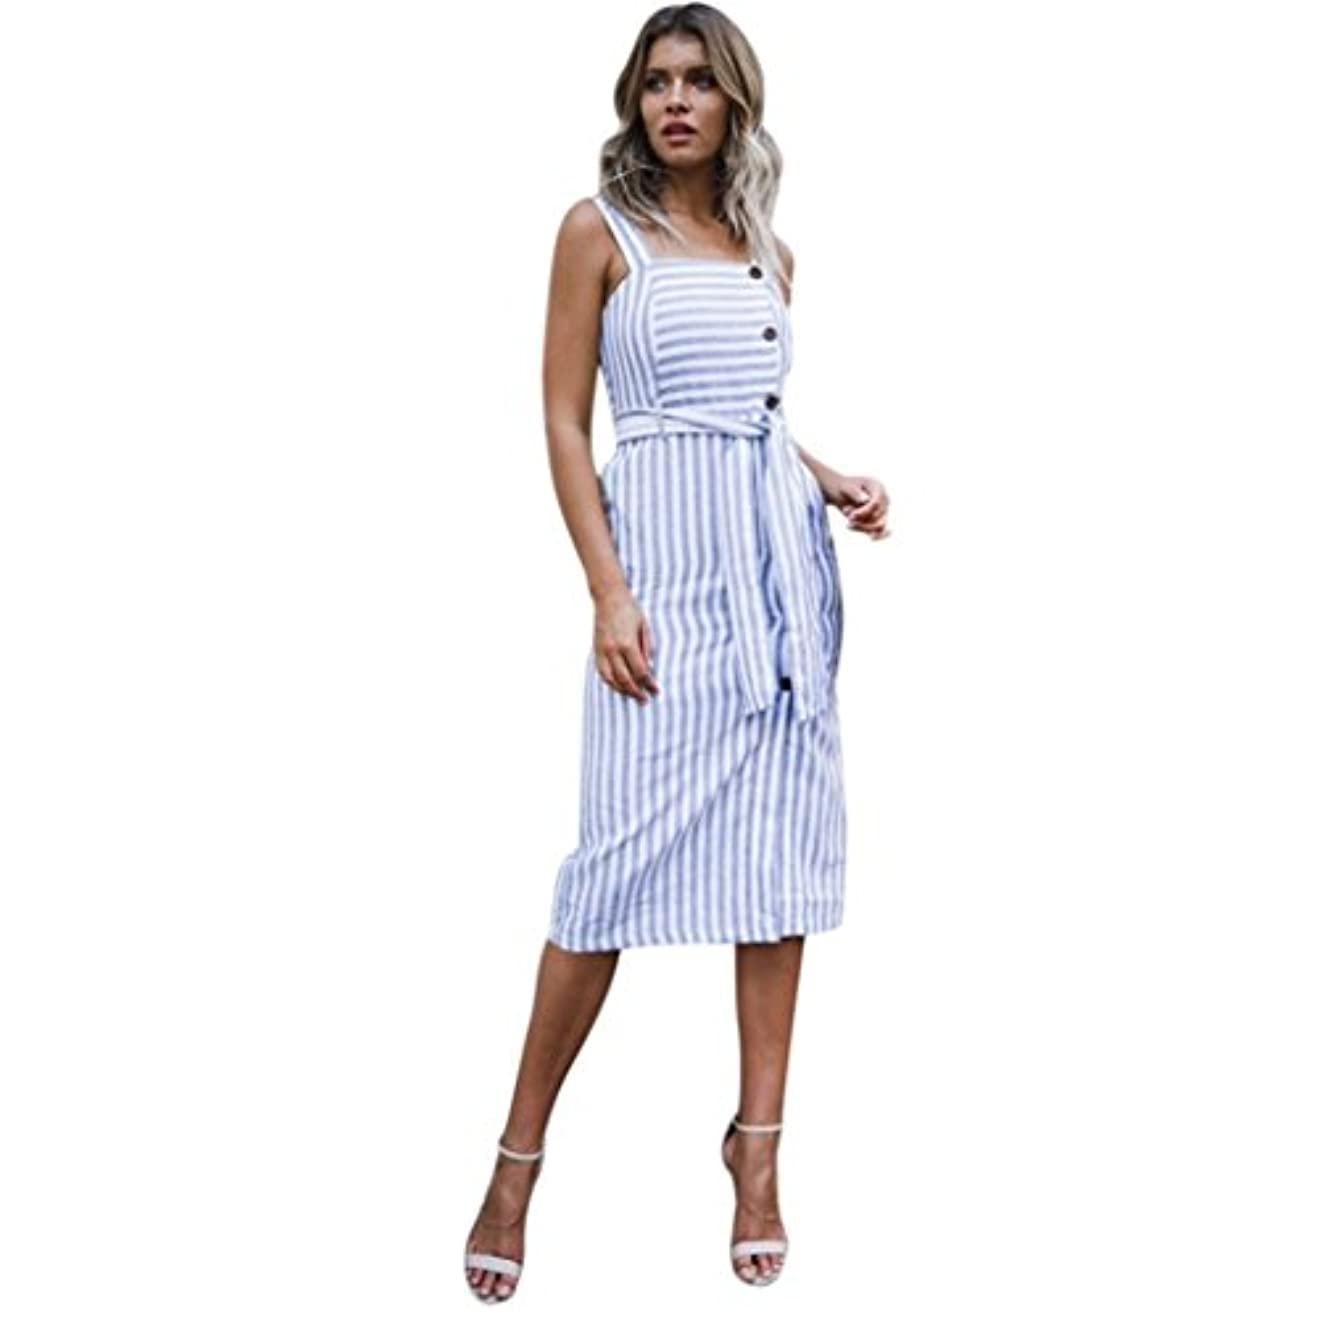 疫病急襲約SakuraBest Womens Summer Striped Button Down Dress,Shoulder Strap Knee-Length Dress for Girls (M)